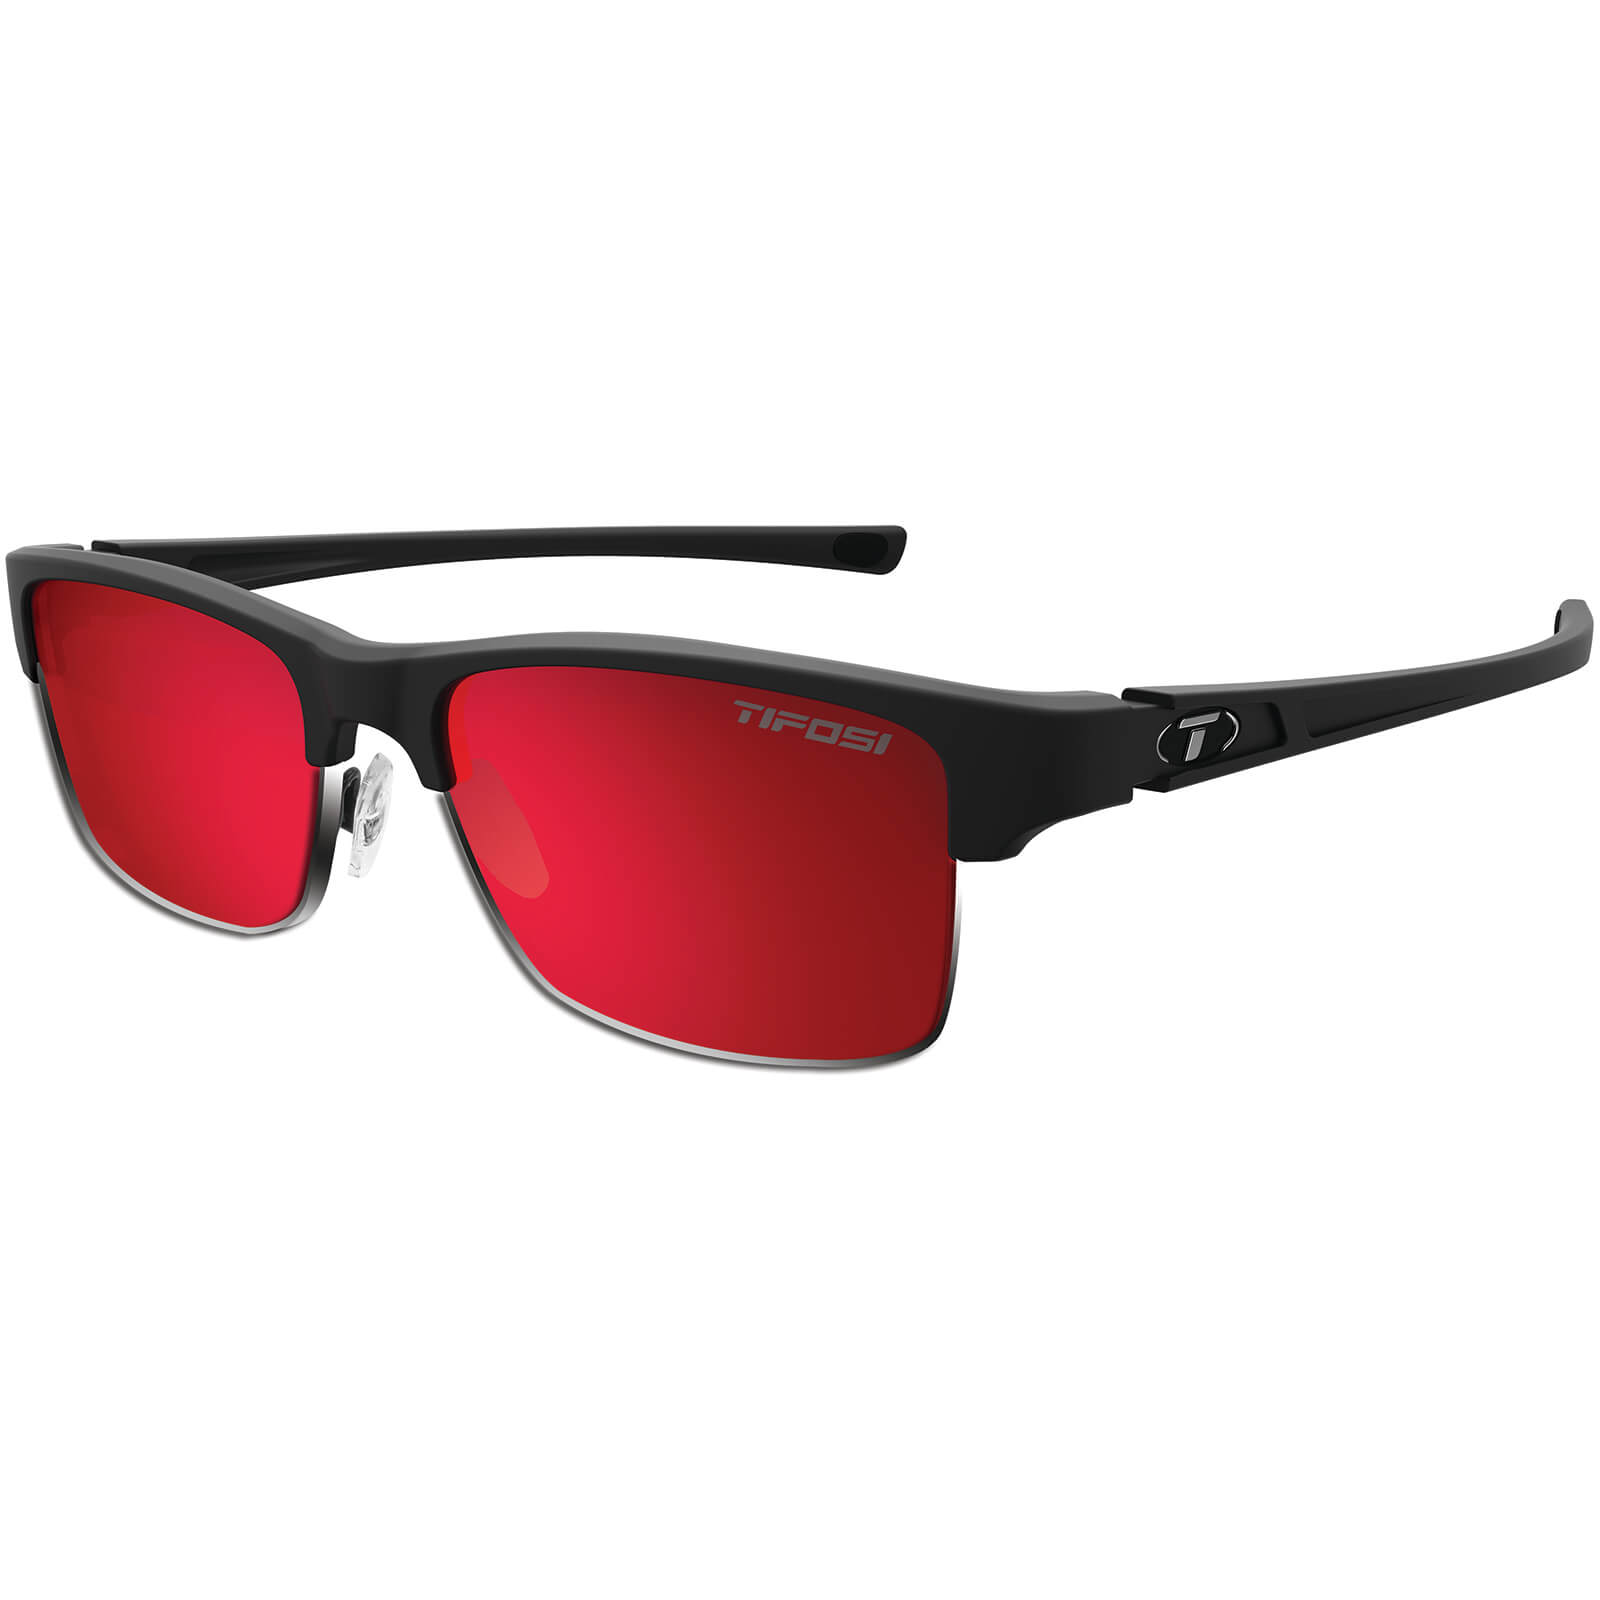 Tifosi Highwire Sunglasses - Matte Black/Smoke Red